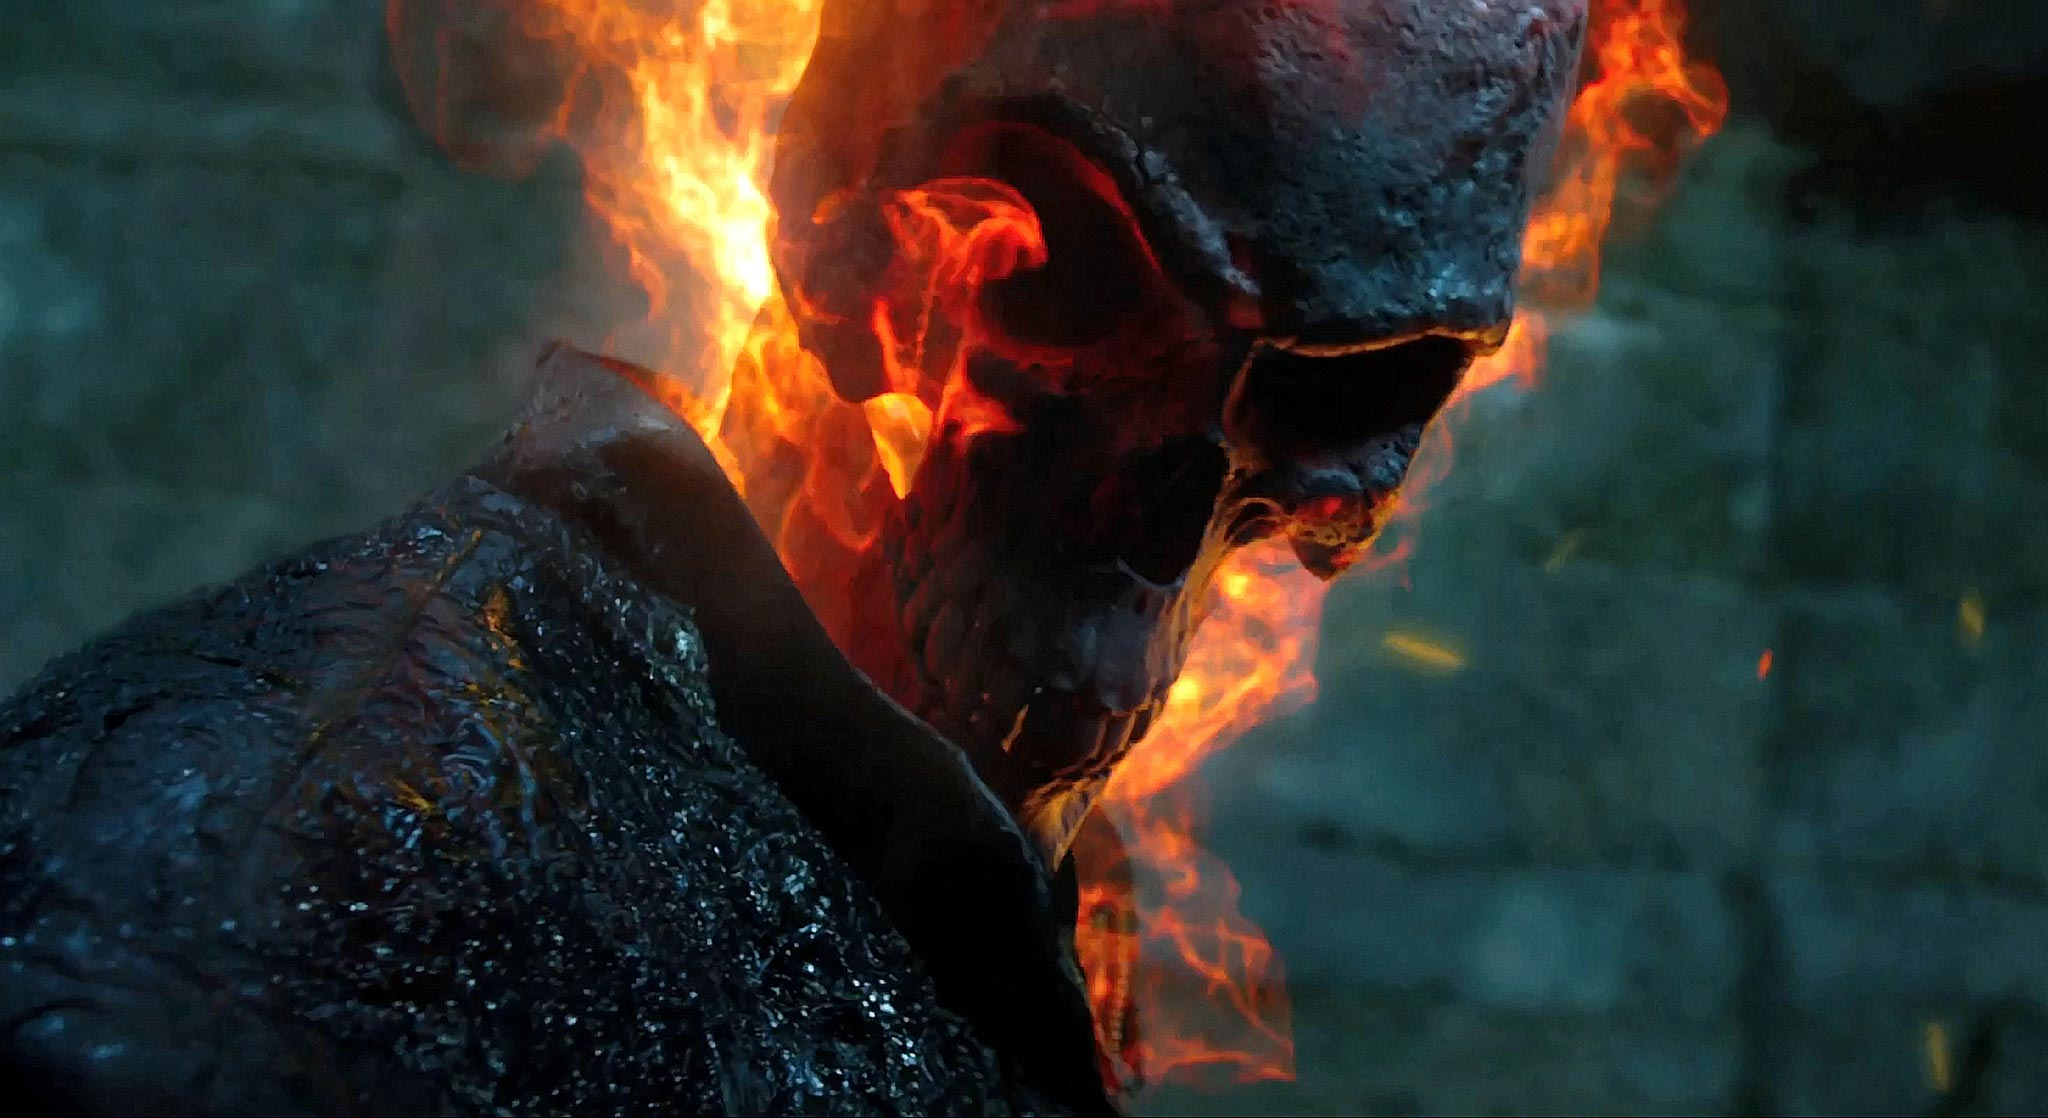 ghost rider spirit of vengeance some new hd(high defination